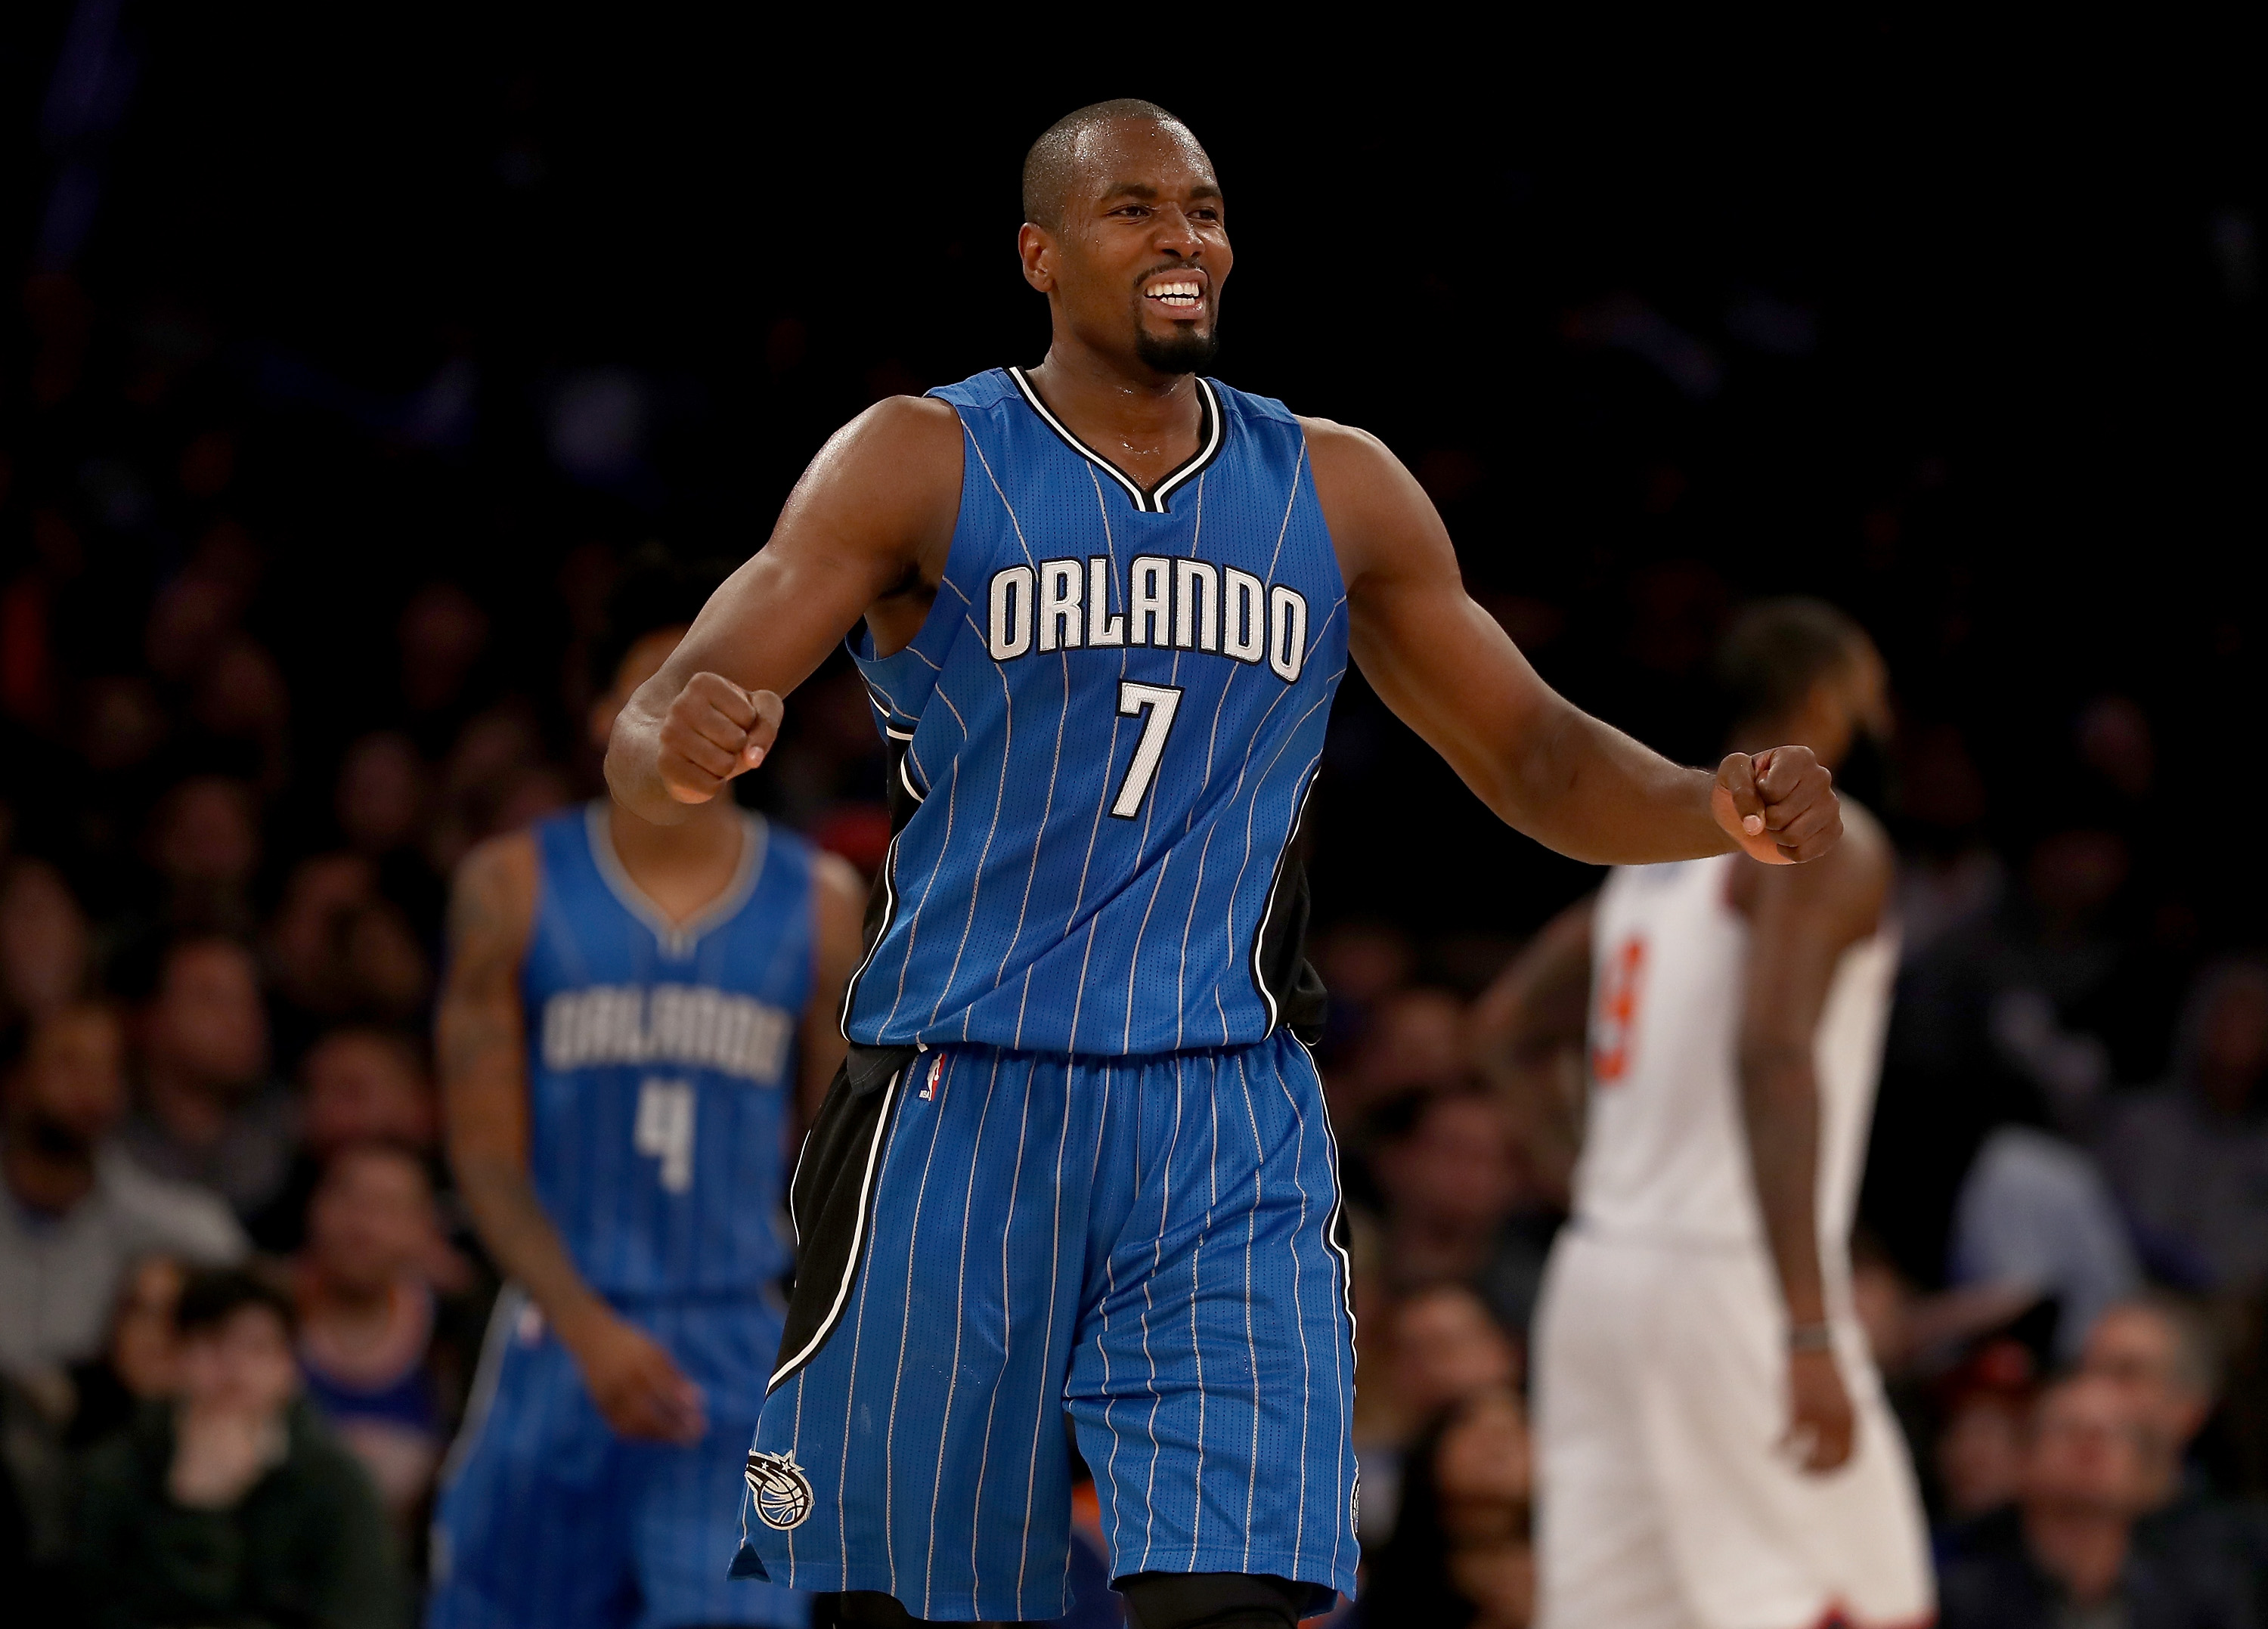 Locked On Celtics: How the Ibaka trade, Love injury, change things